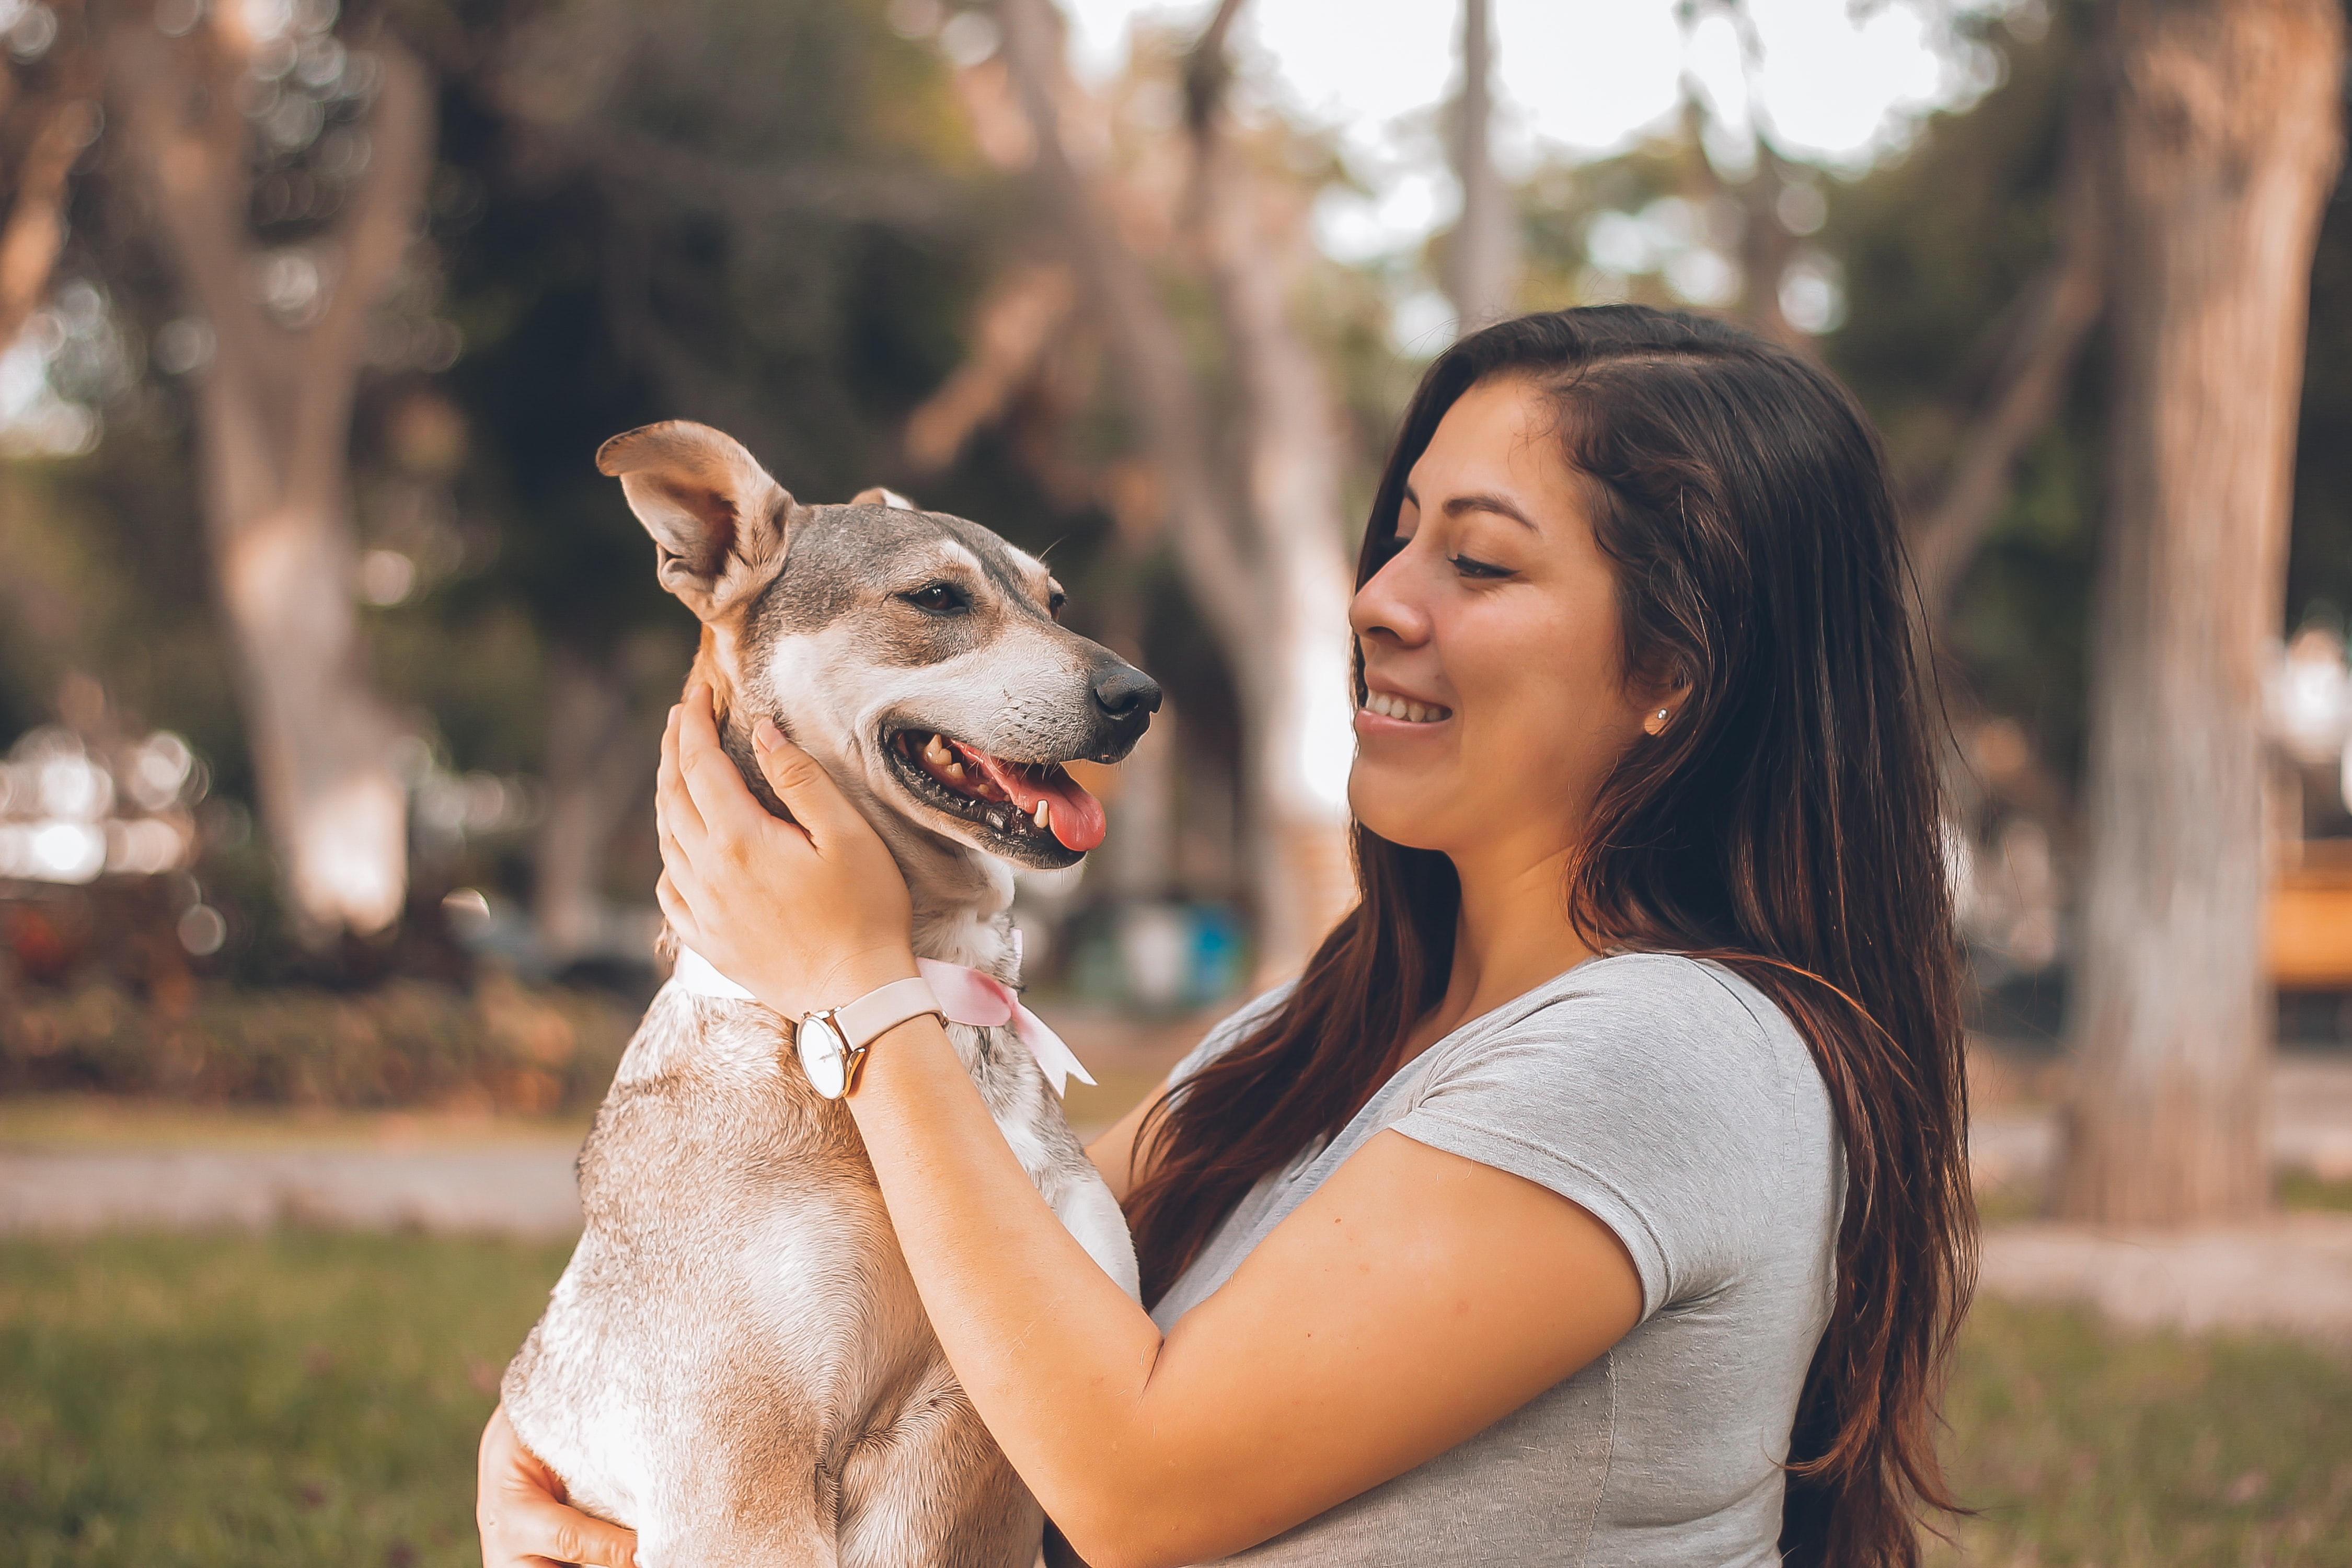 woman-holding-dog benefit from an animal hospital management system